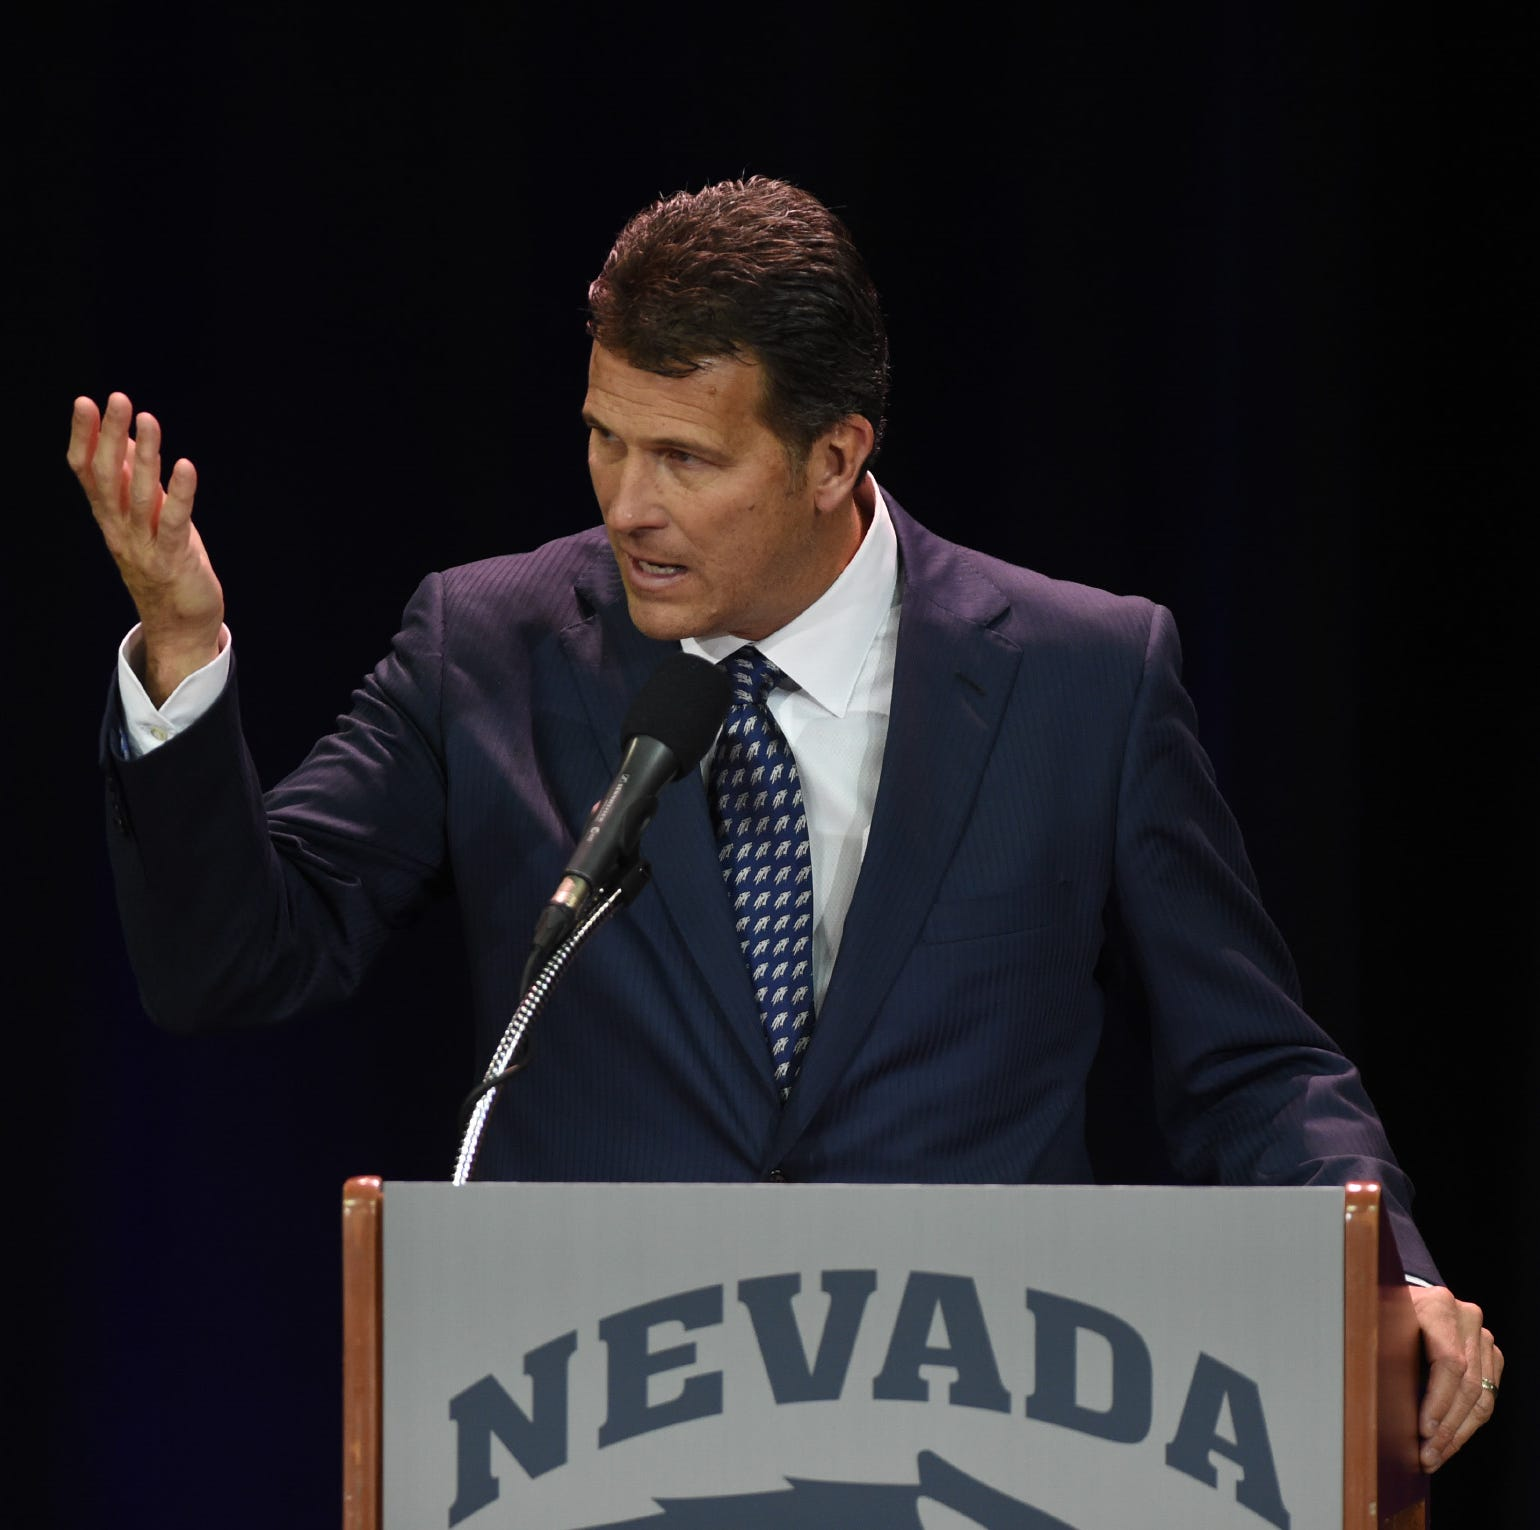 New Nevada coach Steve Alford: Wolf Pack players are 'priority right now'